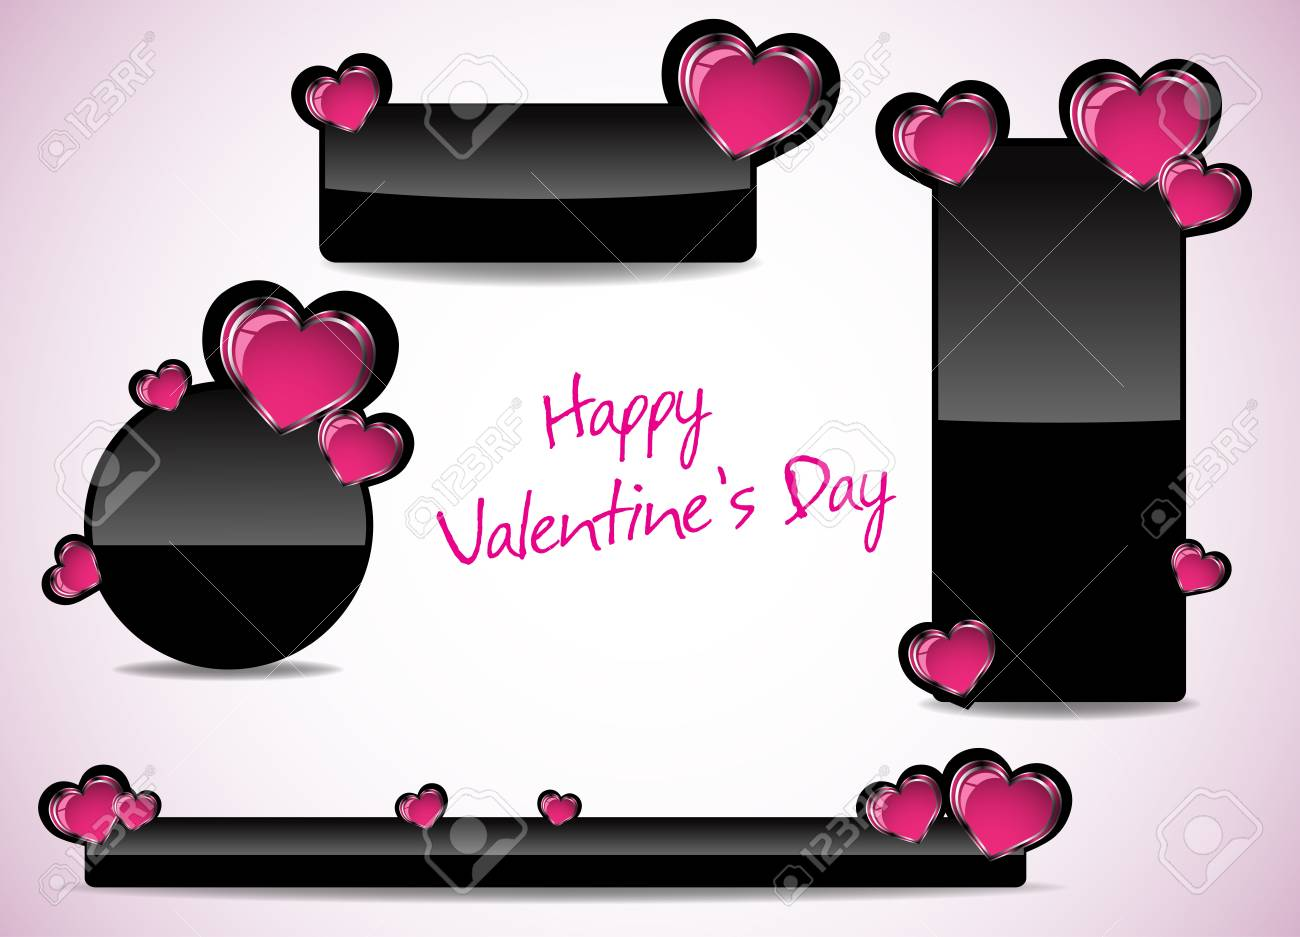 Abstract Valentines Day Banner Design Clip Art Royalty Free Cliparts